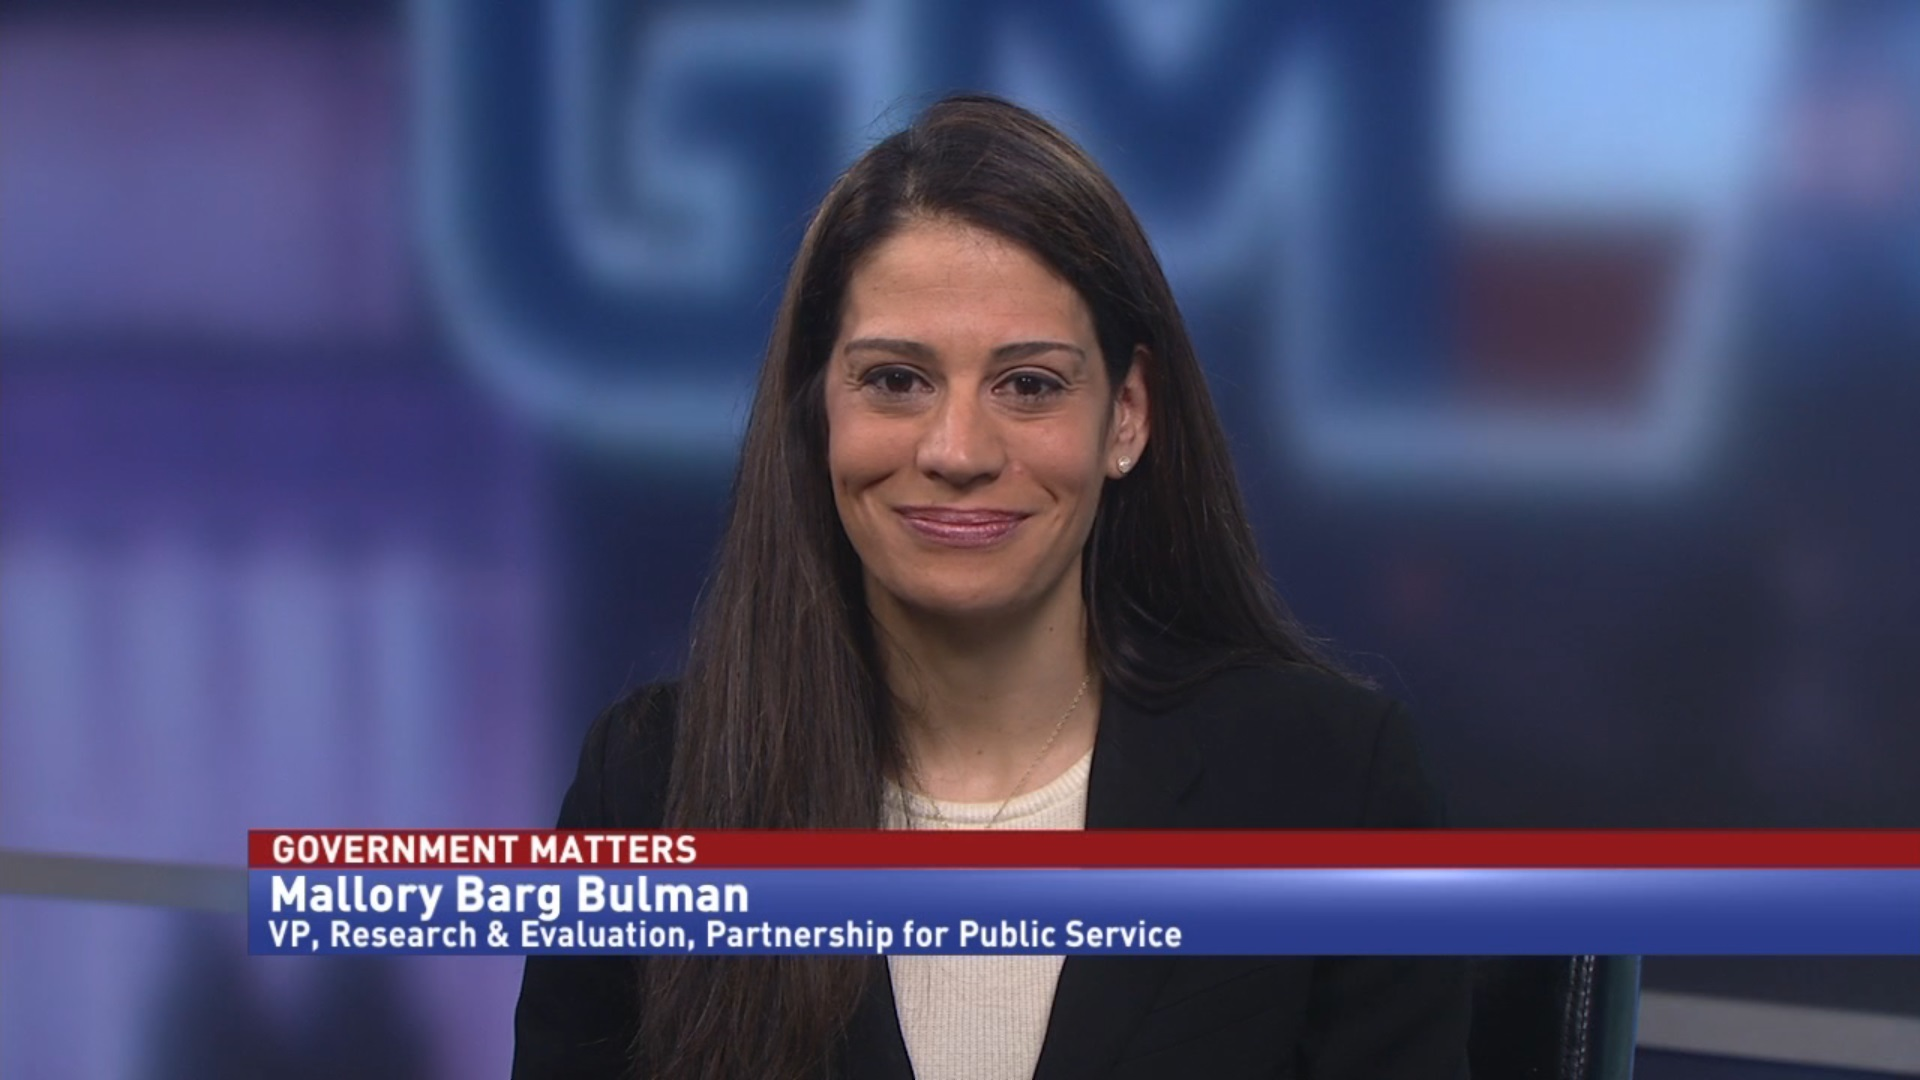 Personnel, retention challenges facing the federal workforce